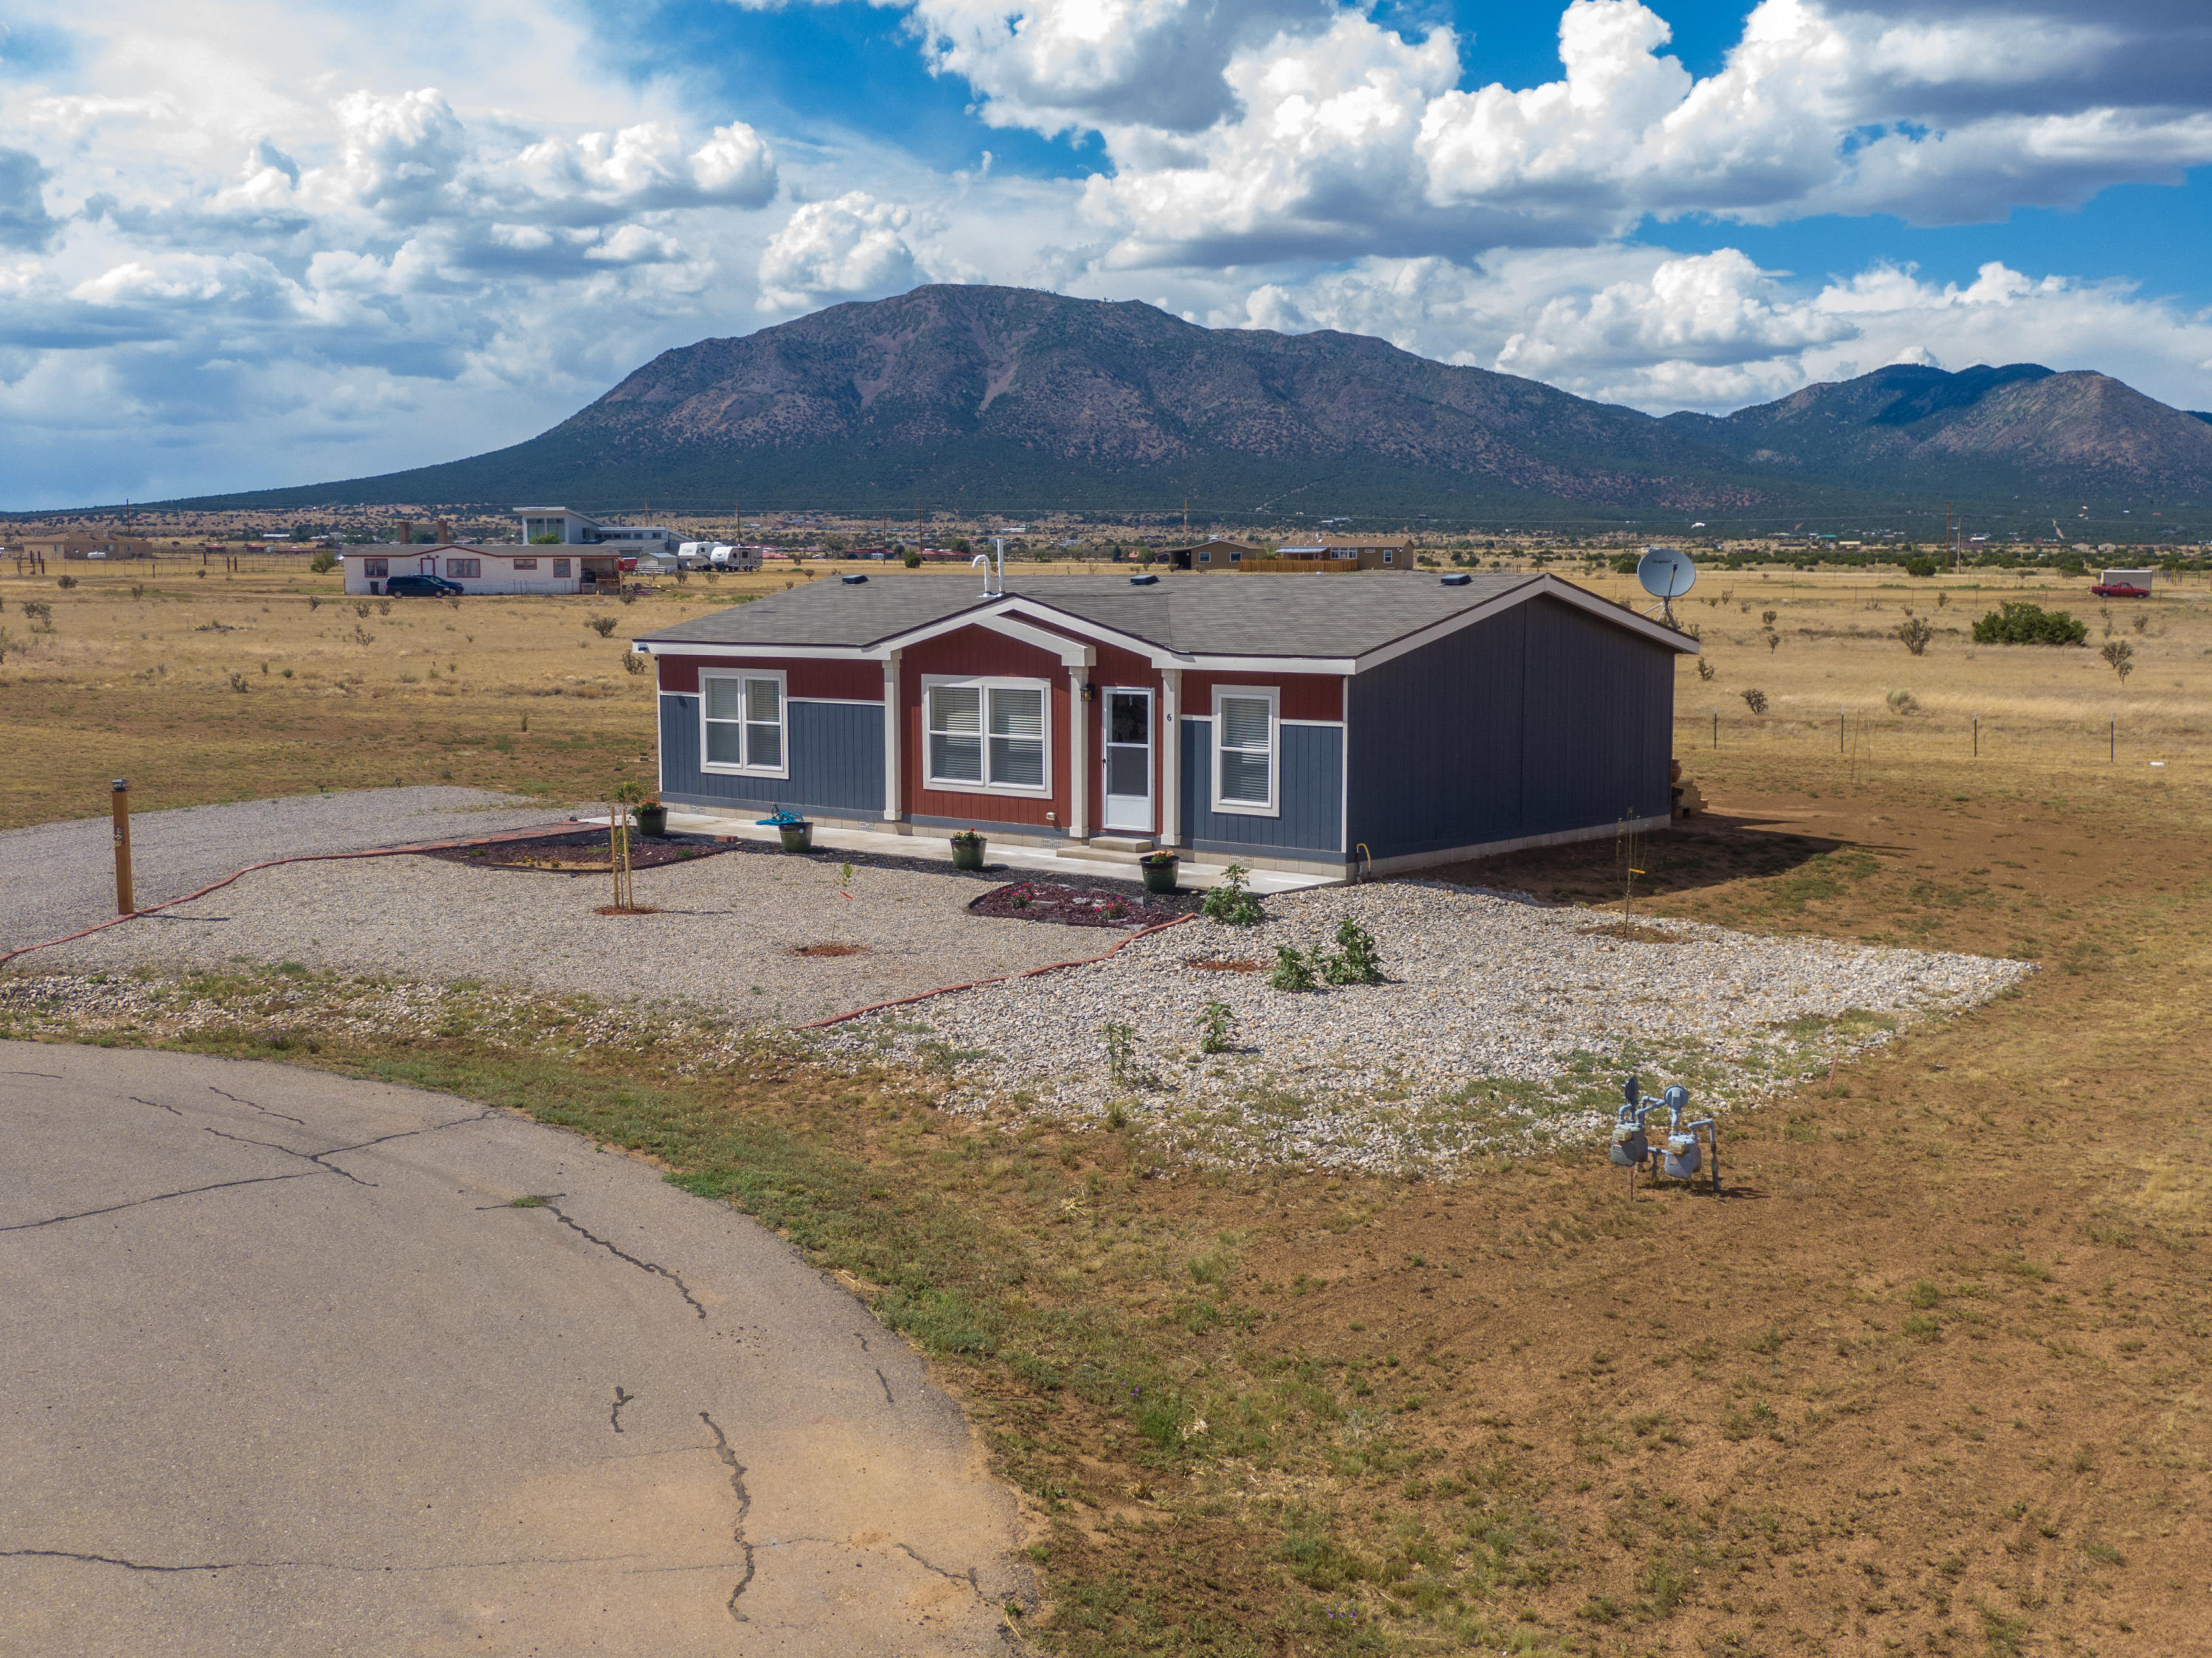 Welcome to this Move-in Ready, 1-Owner, 2017-Built, Single-Level Country Retreat in the East Mountains! Nestled on 1 Full Acre on a Quiet Cul-de-sac, 6 Cob Court offers *Refrigerated Air*, an Open-Concept Floor Plan, and Breathtaking Mountain Views for Miles! This Clean, Modern Kitchen features a Huge Island, Gas Range, Stainless Range Hood, and Pantry. Your Master Suite presents Double Sinks, a Large Garden Tub, Separate Shower, and Walk-in Closet. Take in Stunning Mountain Views on your Newly-Built Deck in the back! Horses Welcome! Community Water + Natural Gas. Make an appointment to see this Like-New Home today!